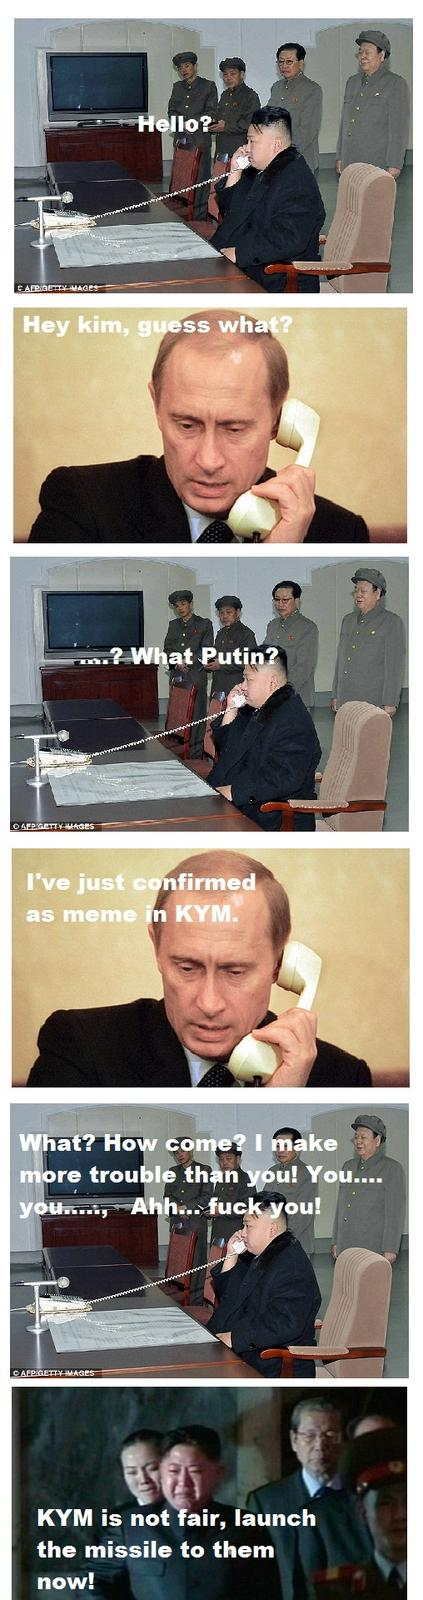 Putin call his friend